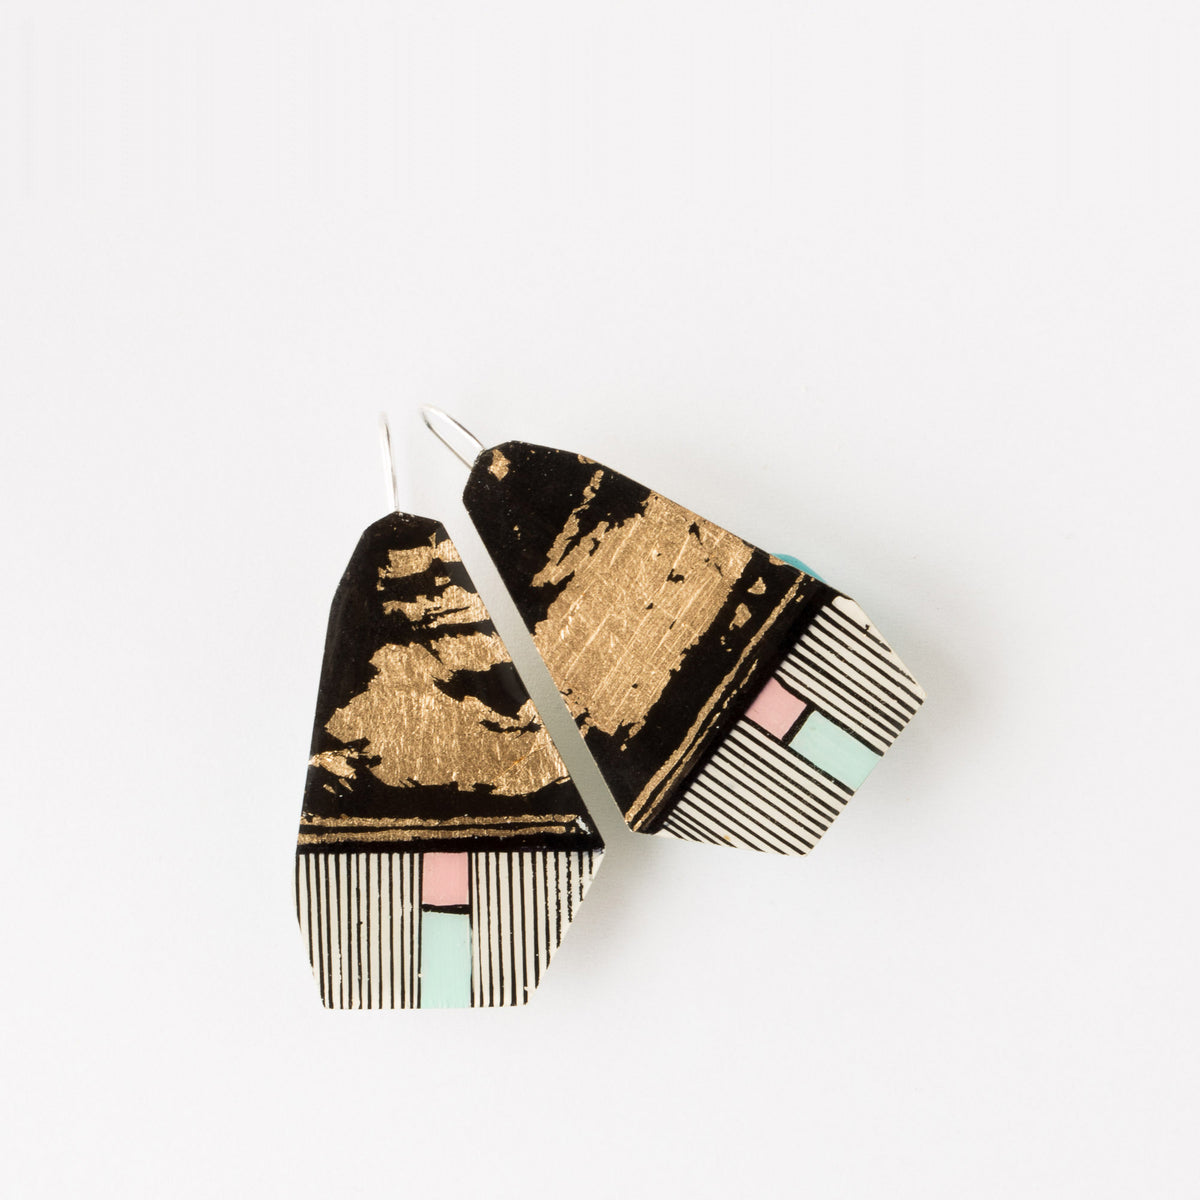 Top View - 589-2 - Hand-Painted Contemporary Earrings - Sold by Chic & Basta